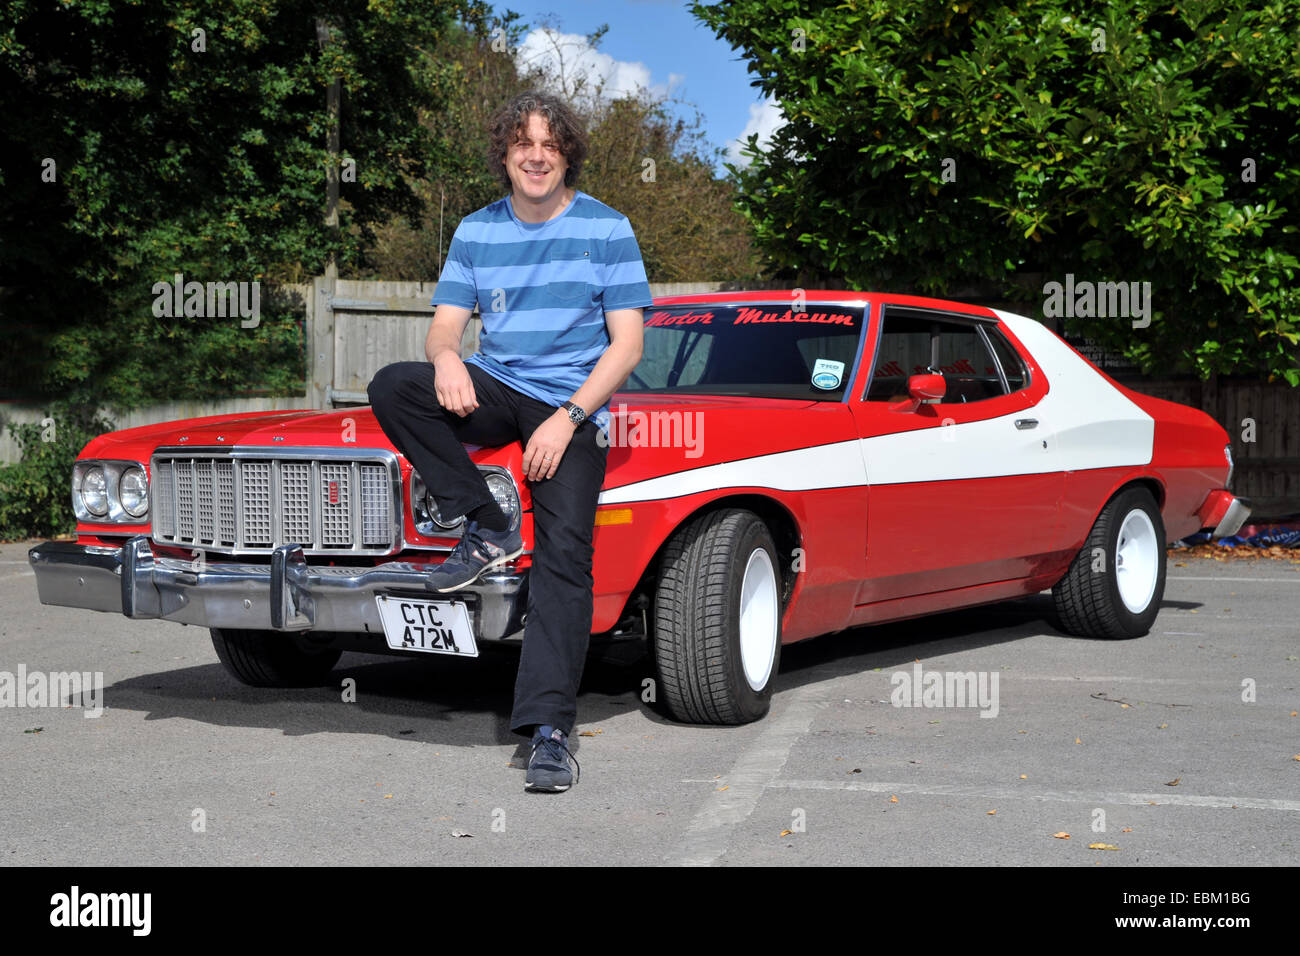 comedian alan davies with a replica starsky and hutch ford gran stock photo 76042836 alamy. Black Bedroom Furniture Sets. Home Design Ideas